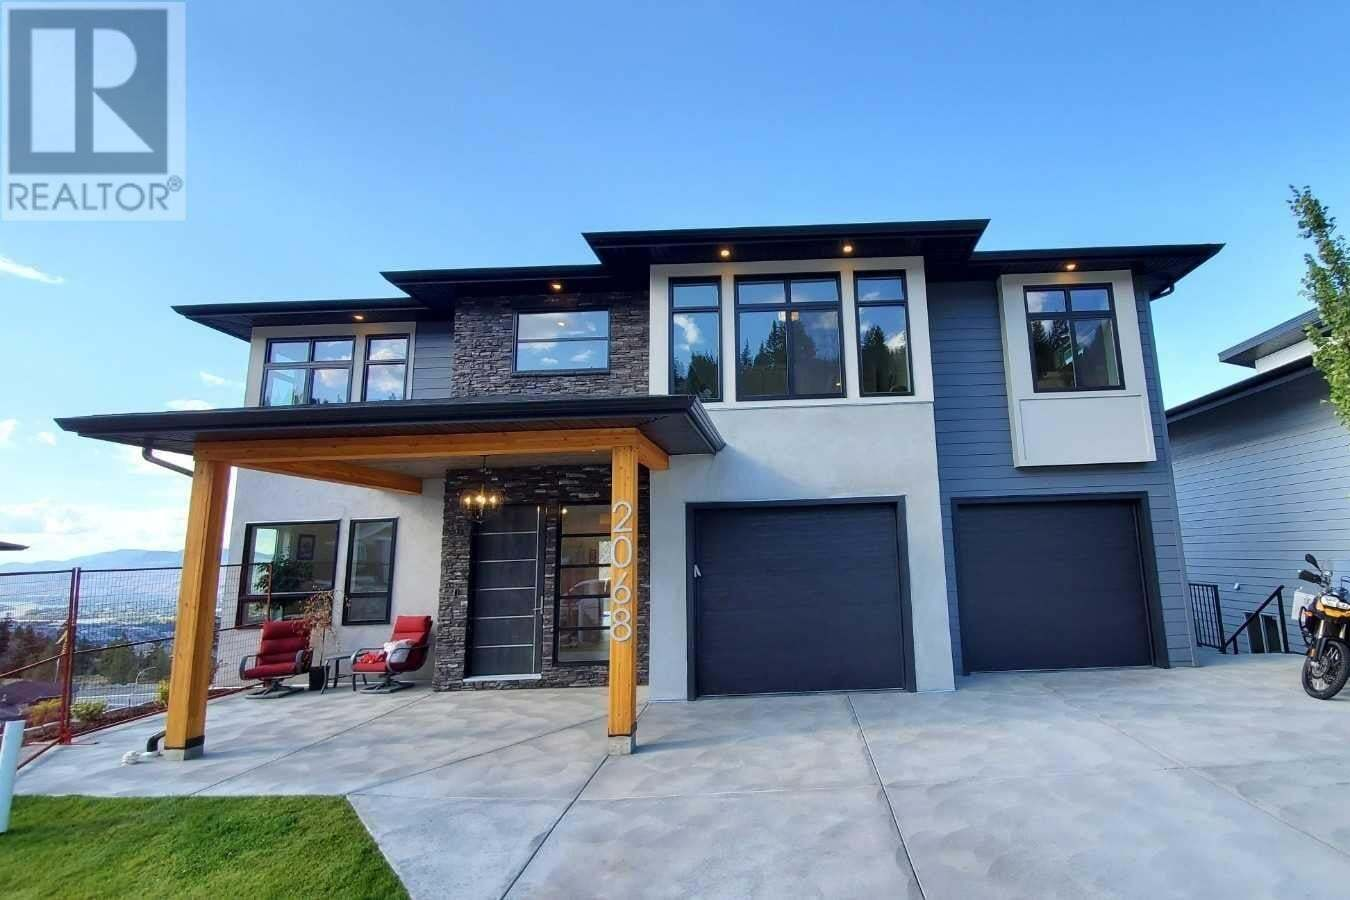 House for sale at 2068 Galore Cres Kamloops British Columbia - MLS: X4645941